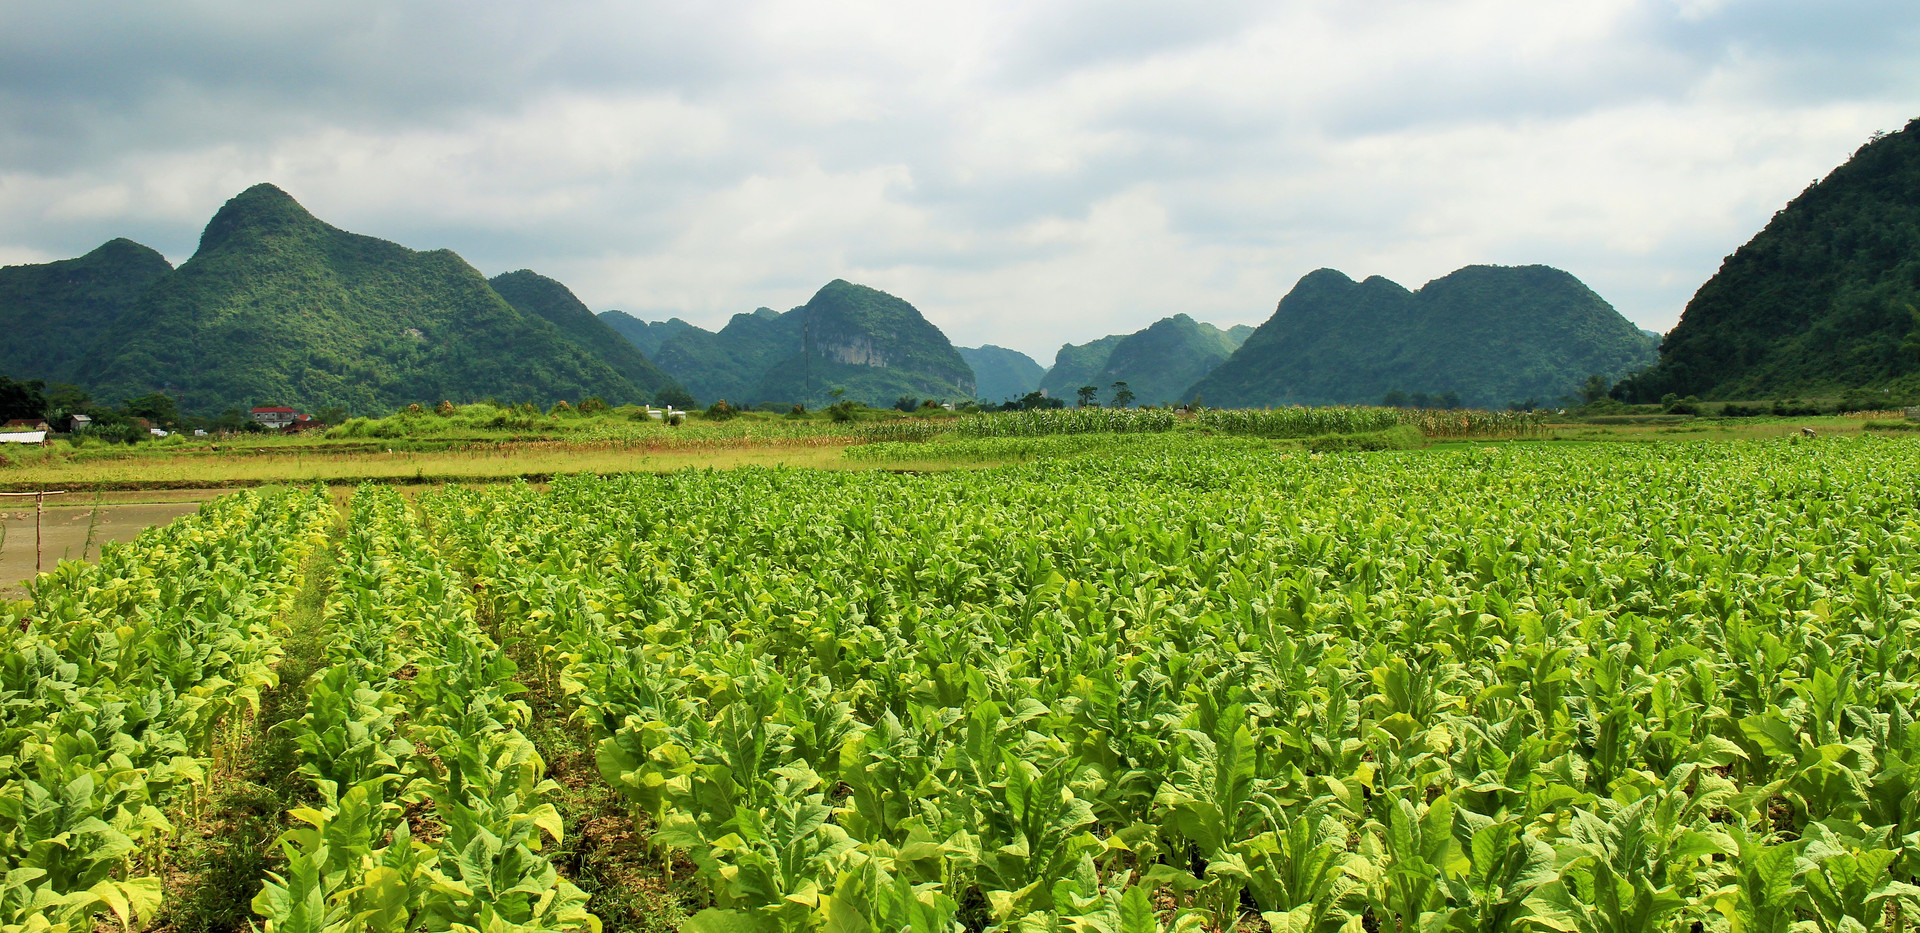 The unique corn fields in Bac Son